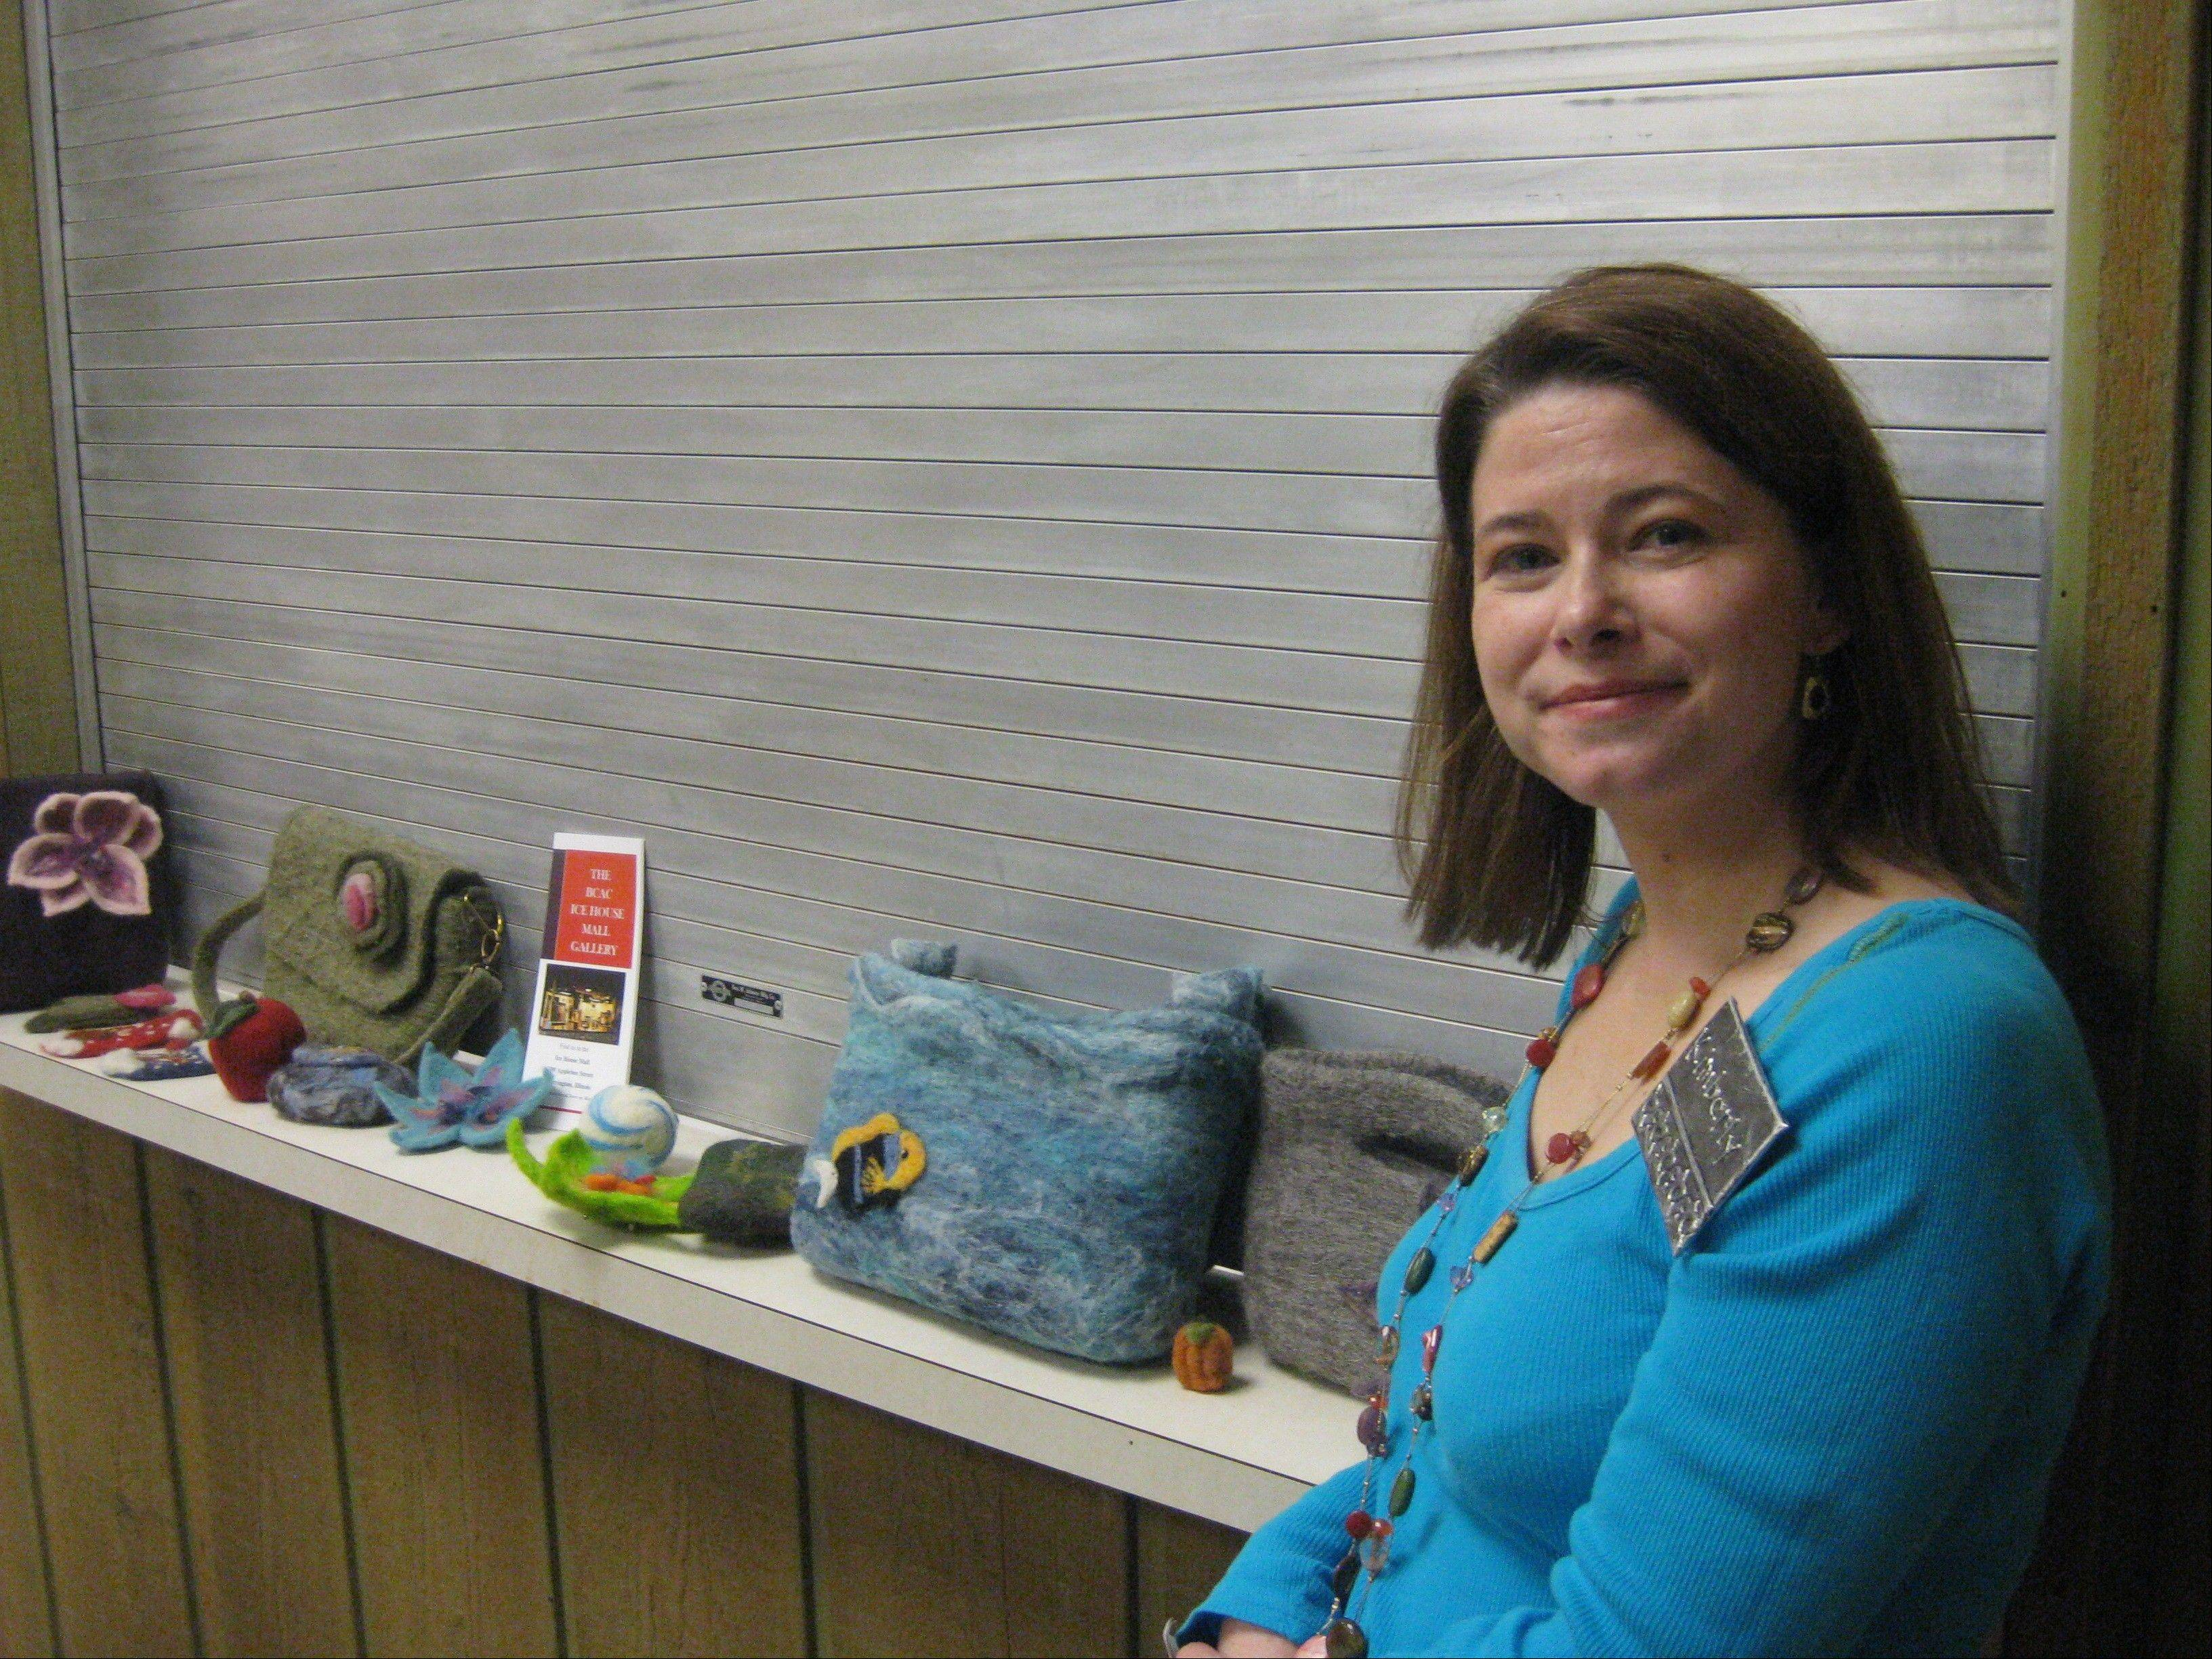 Artist Kimberly Butts displays some of her work from purses to pictures at Crabtree Nature Center in Barrington Hills.